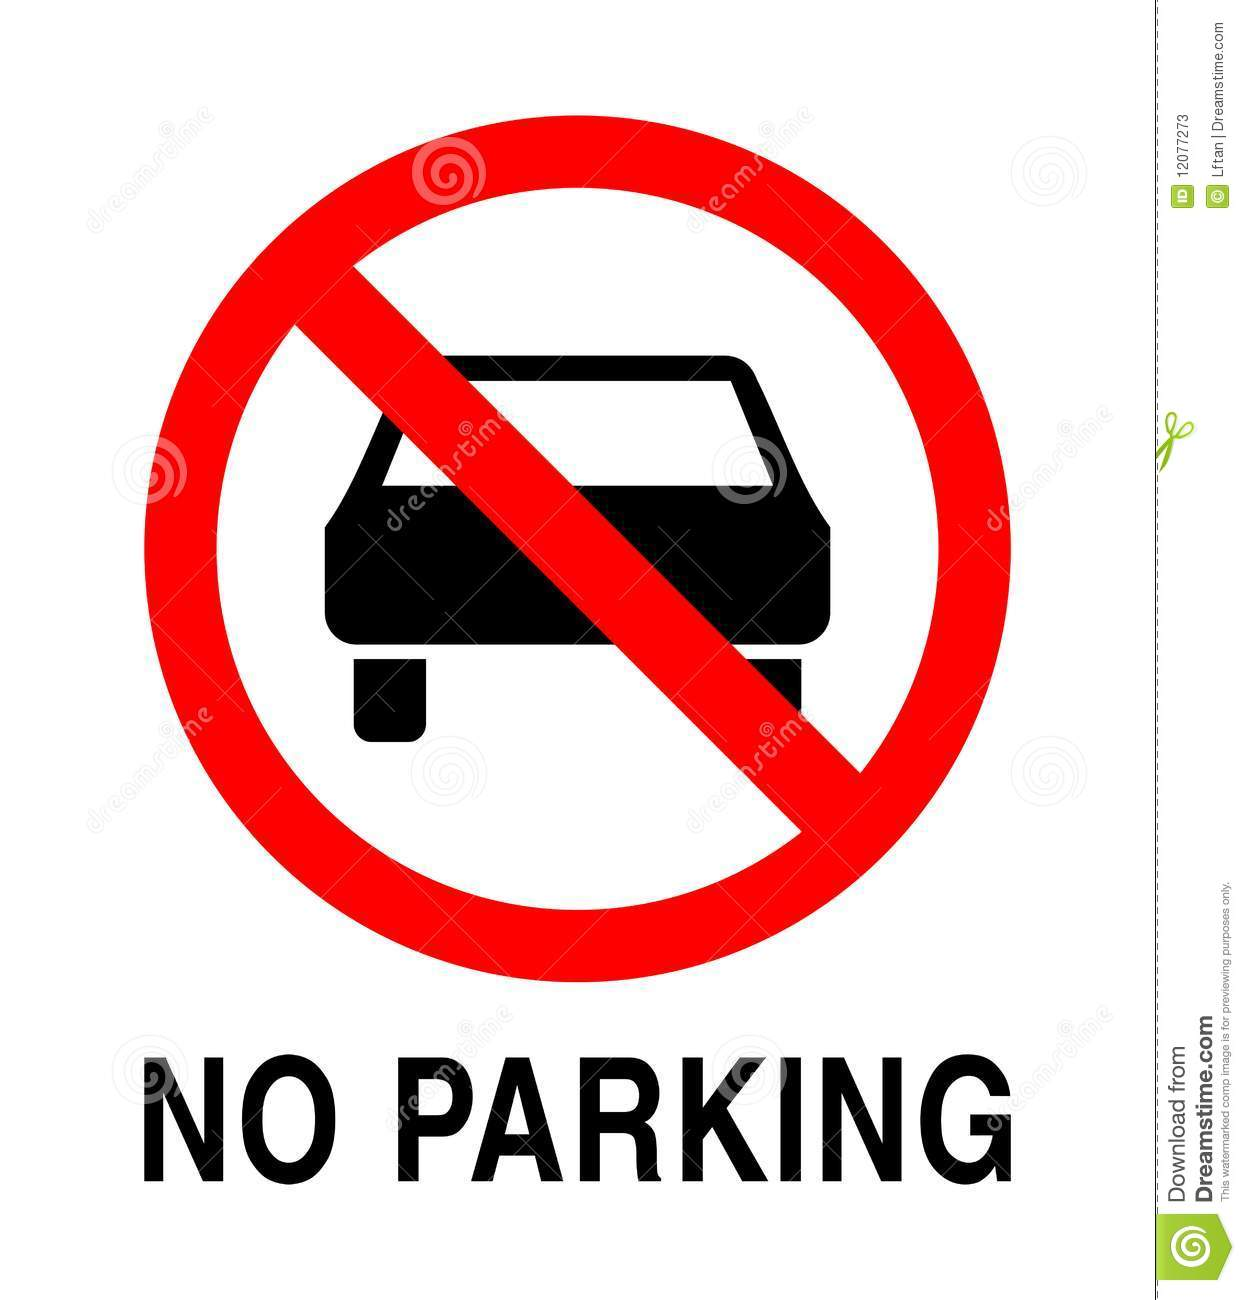 No Parking Sign Stock Photos, Images, & Pictures - 1,725 Images